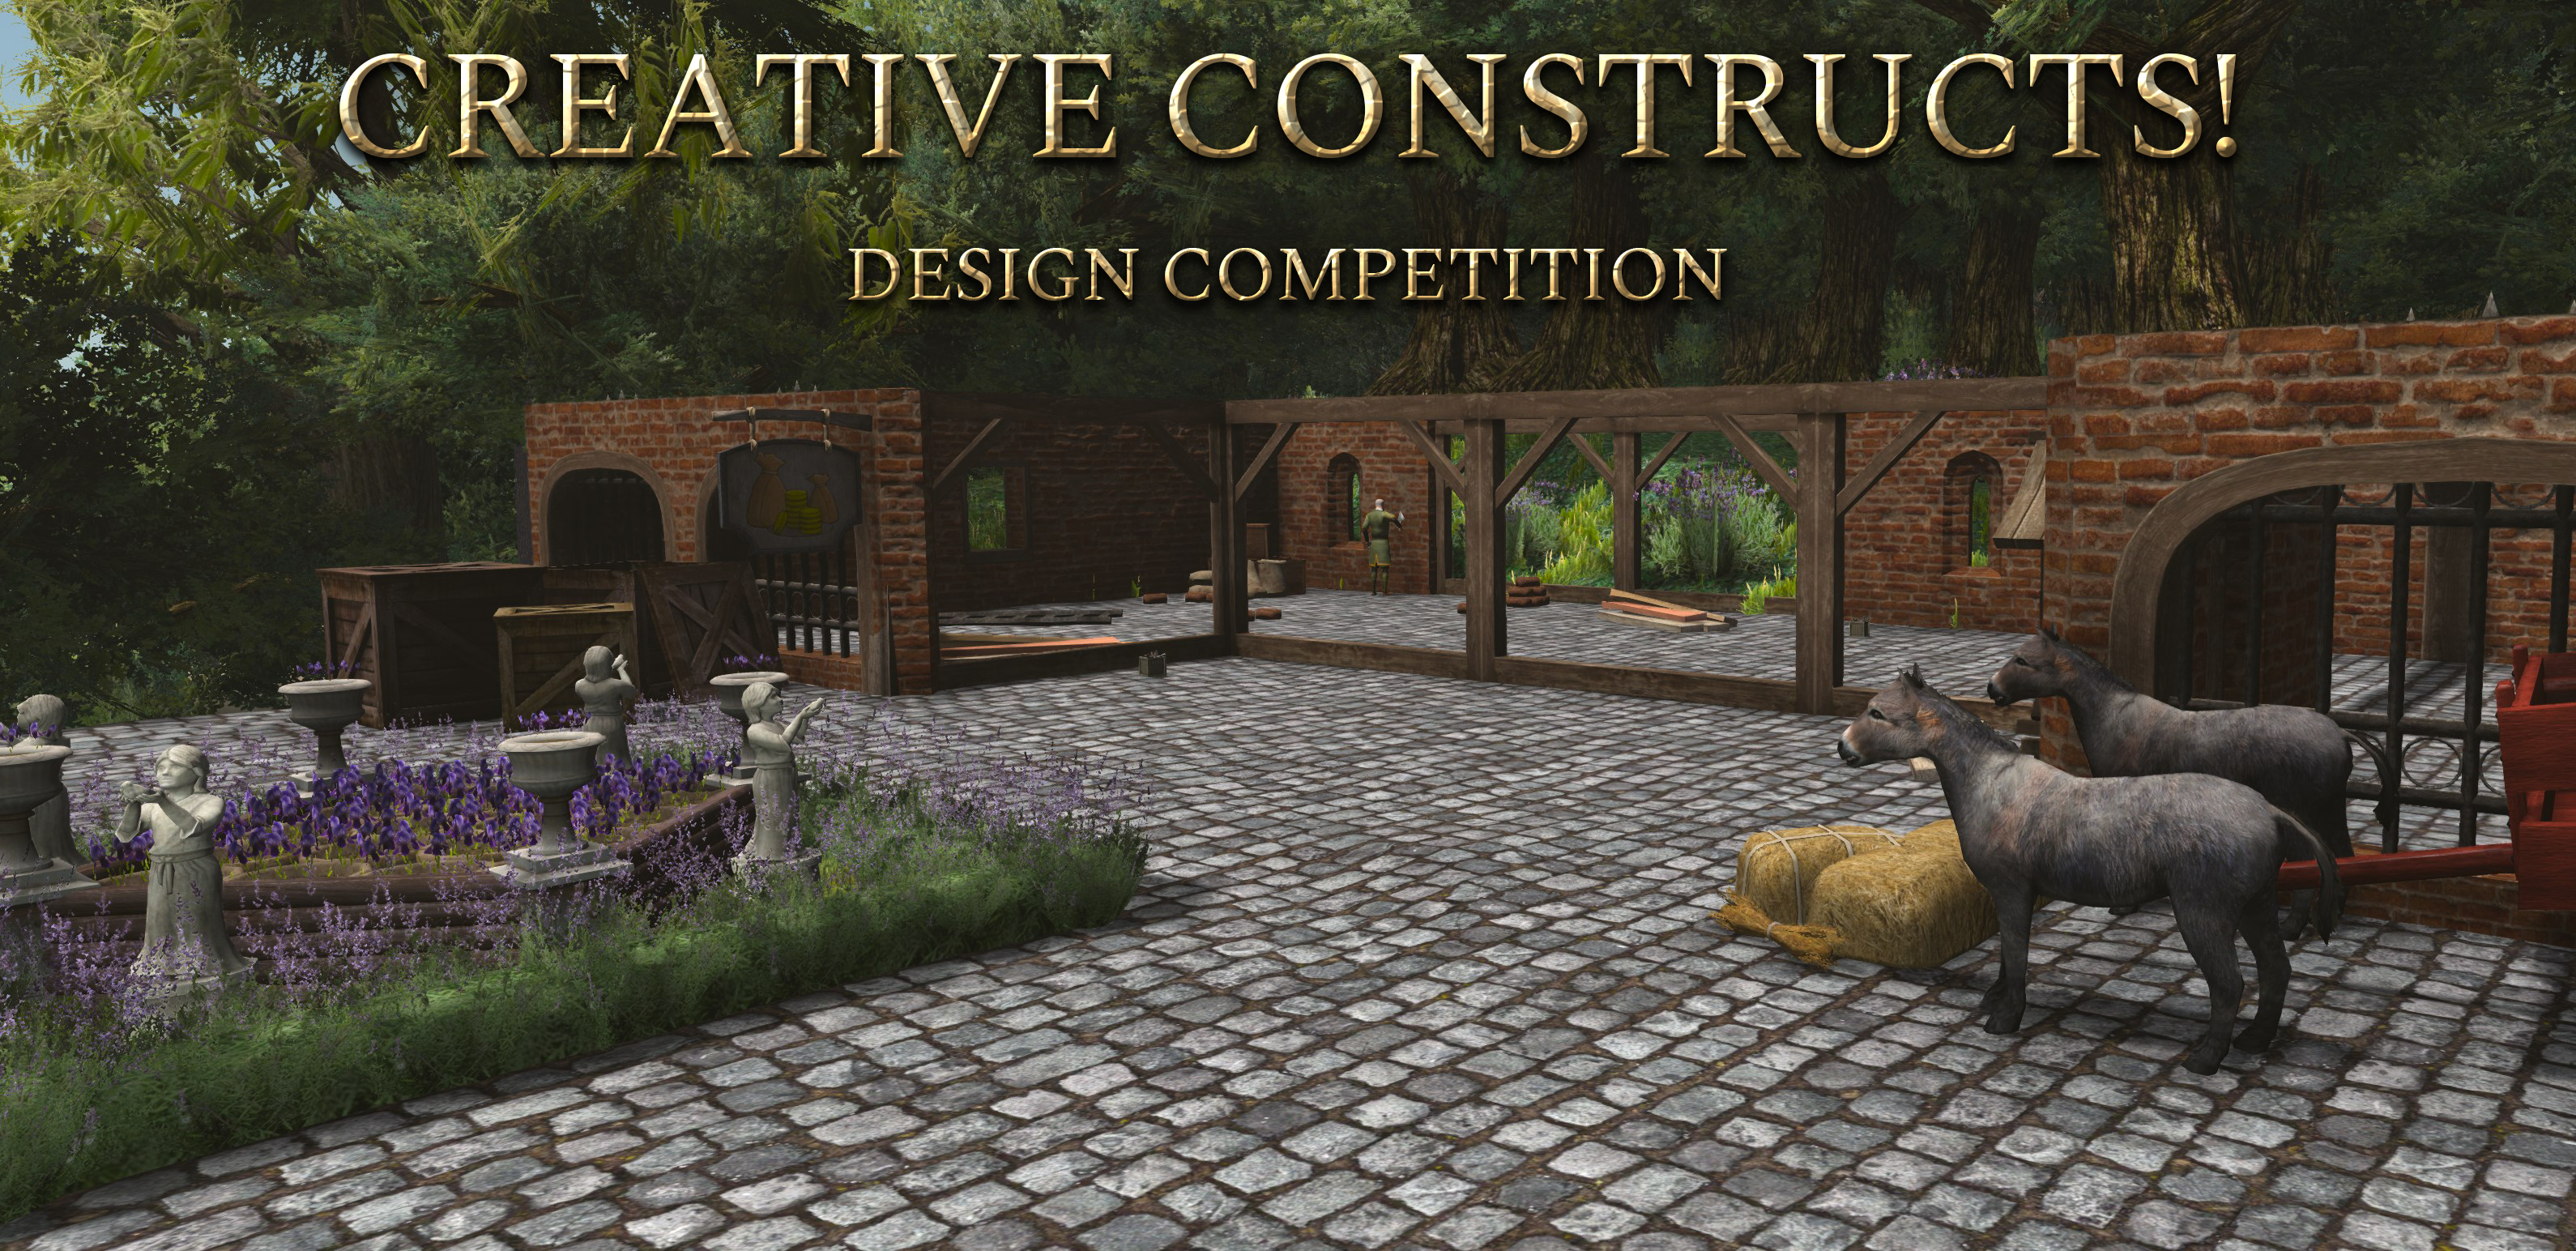 creative_constructs_contest.png